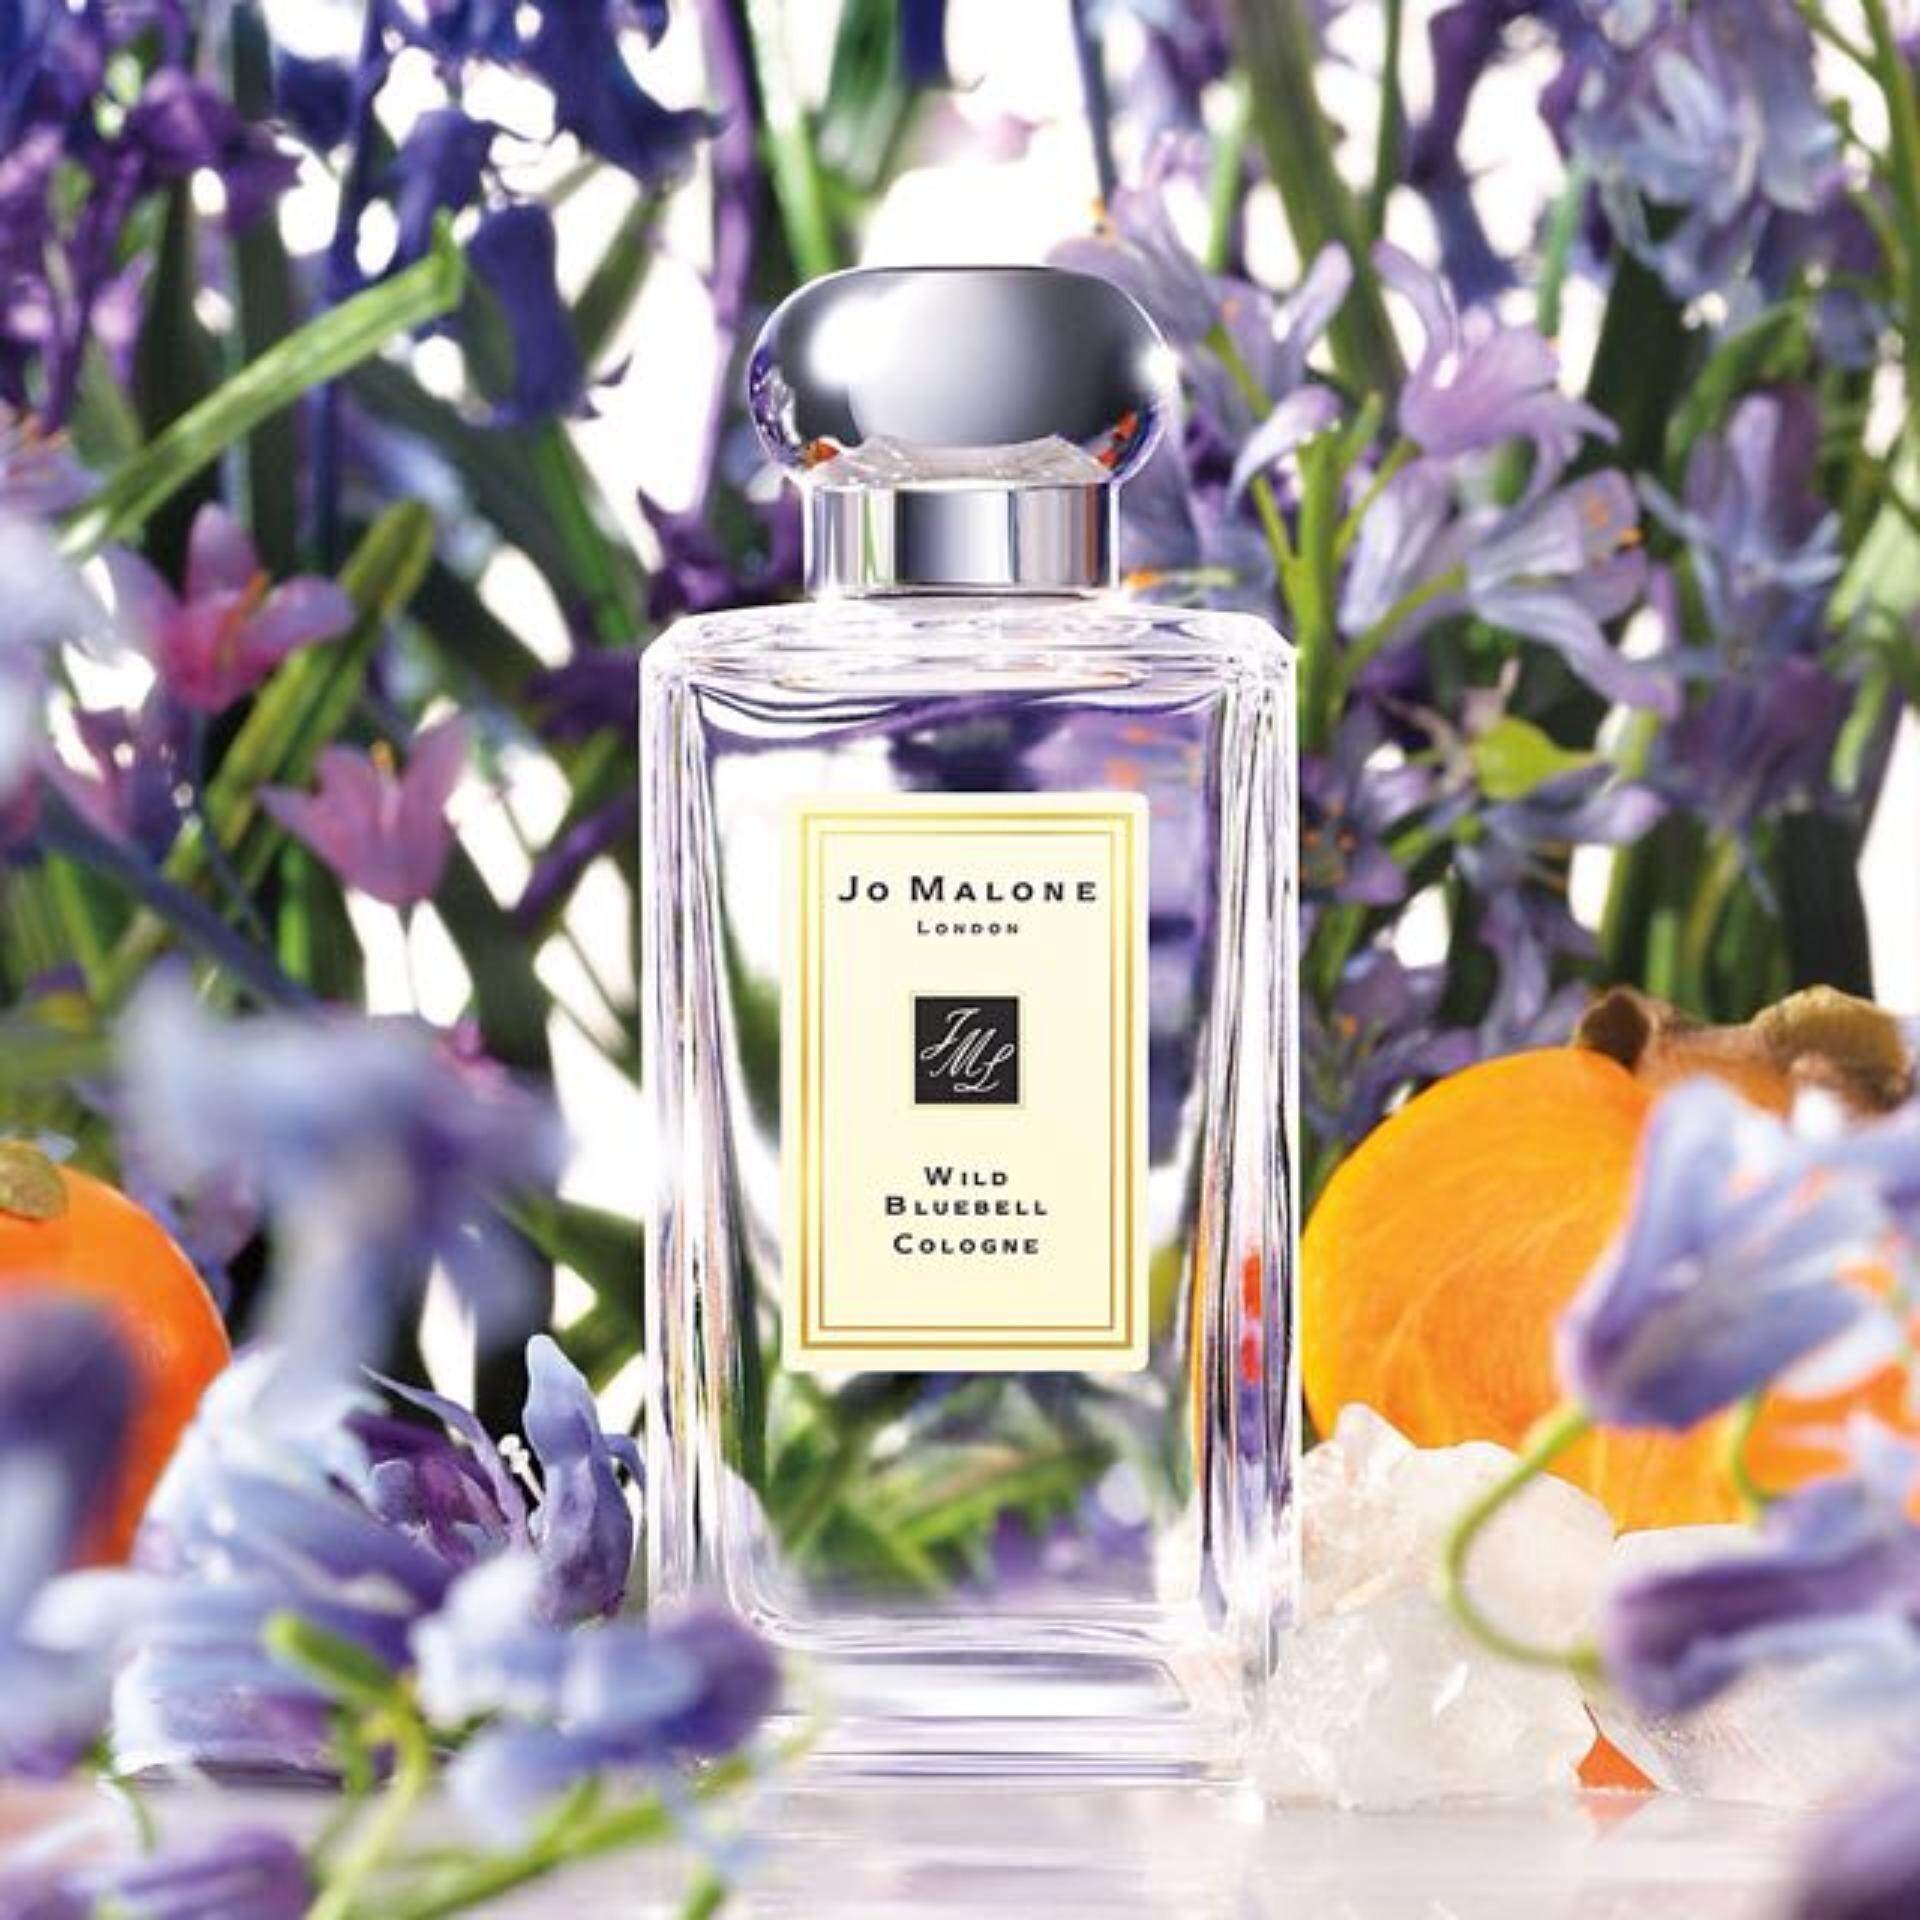 Wild Bluebell Cologne by Jo Malone for Unisex 100ml